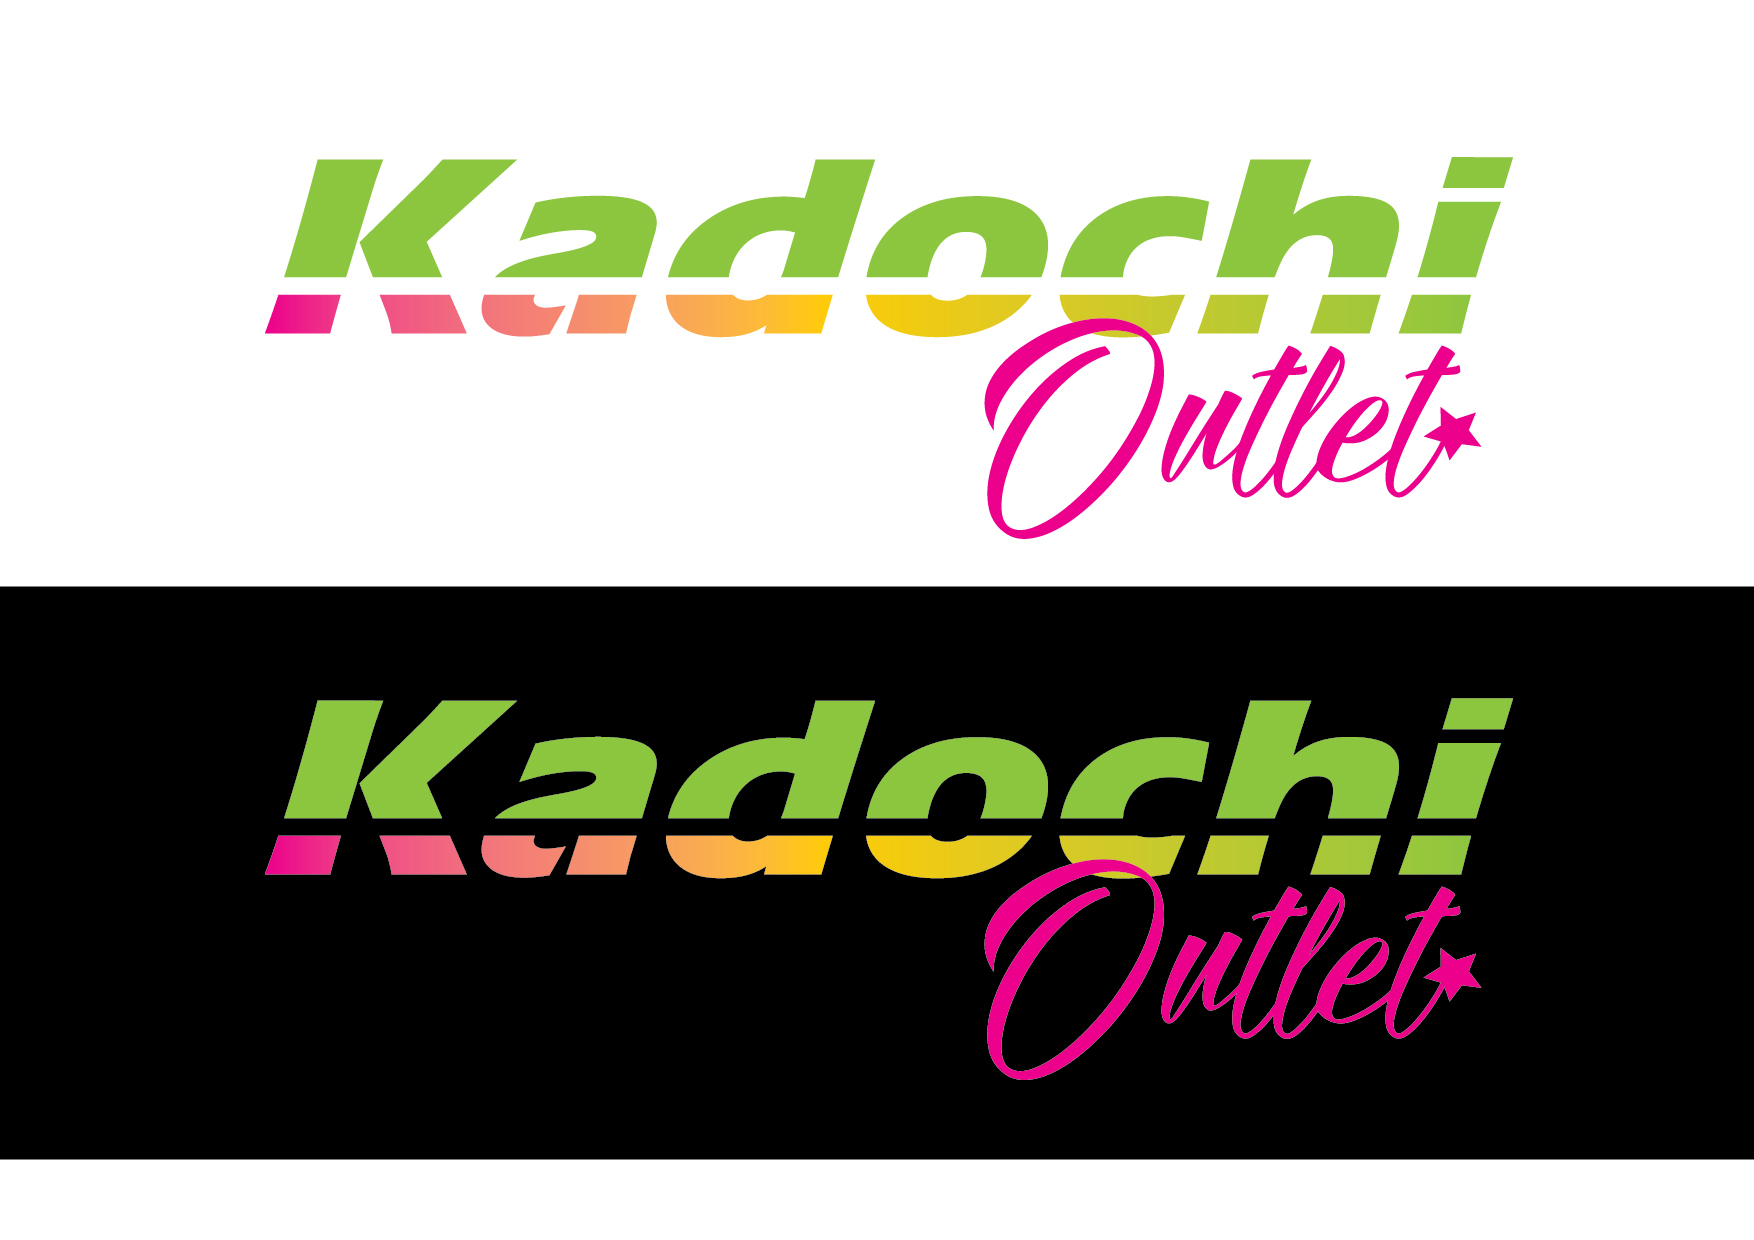 Kadochi Outlet